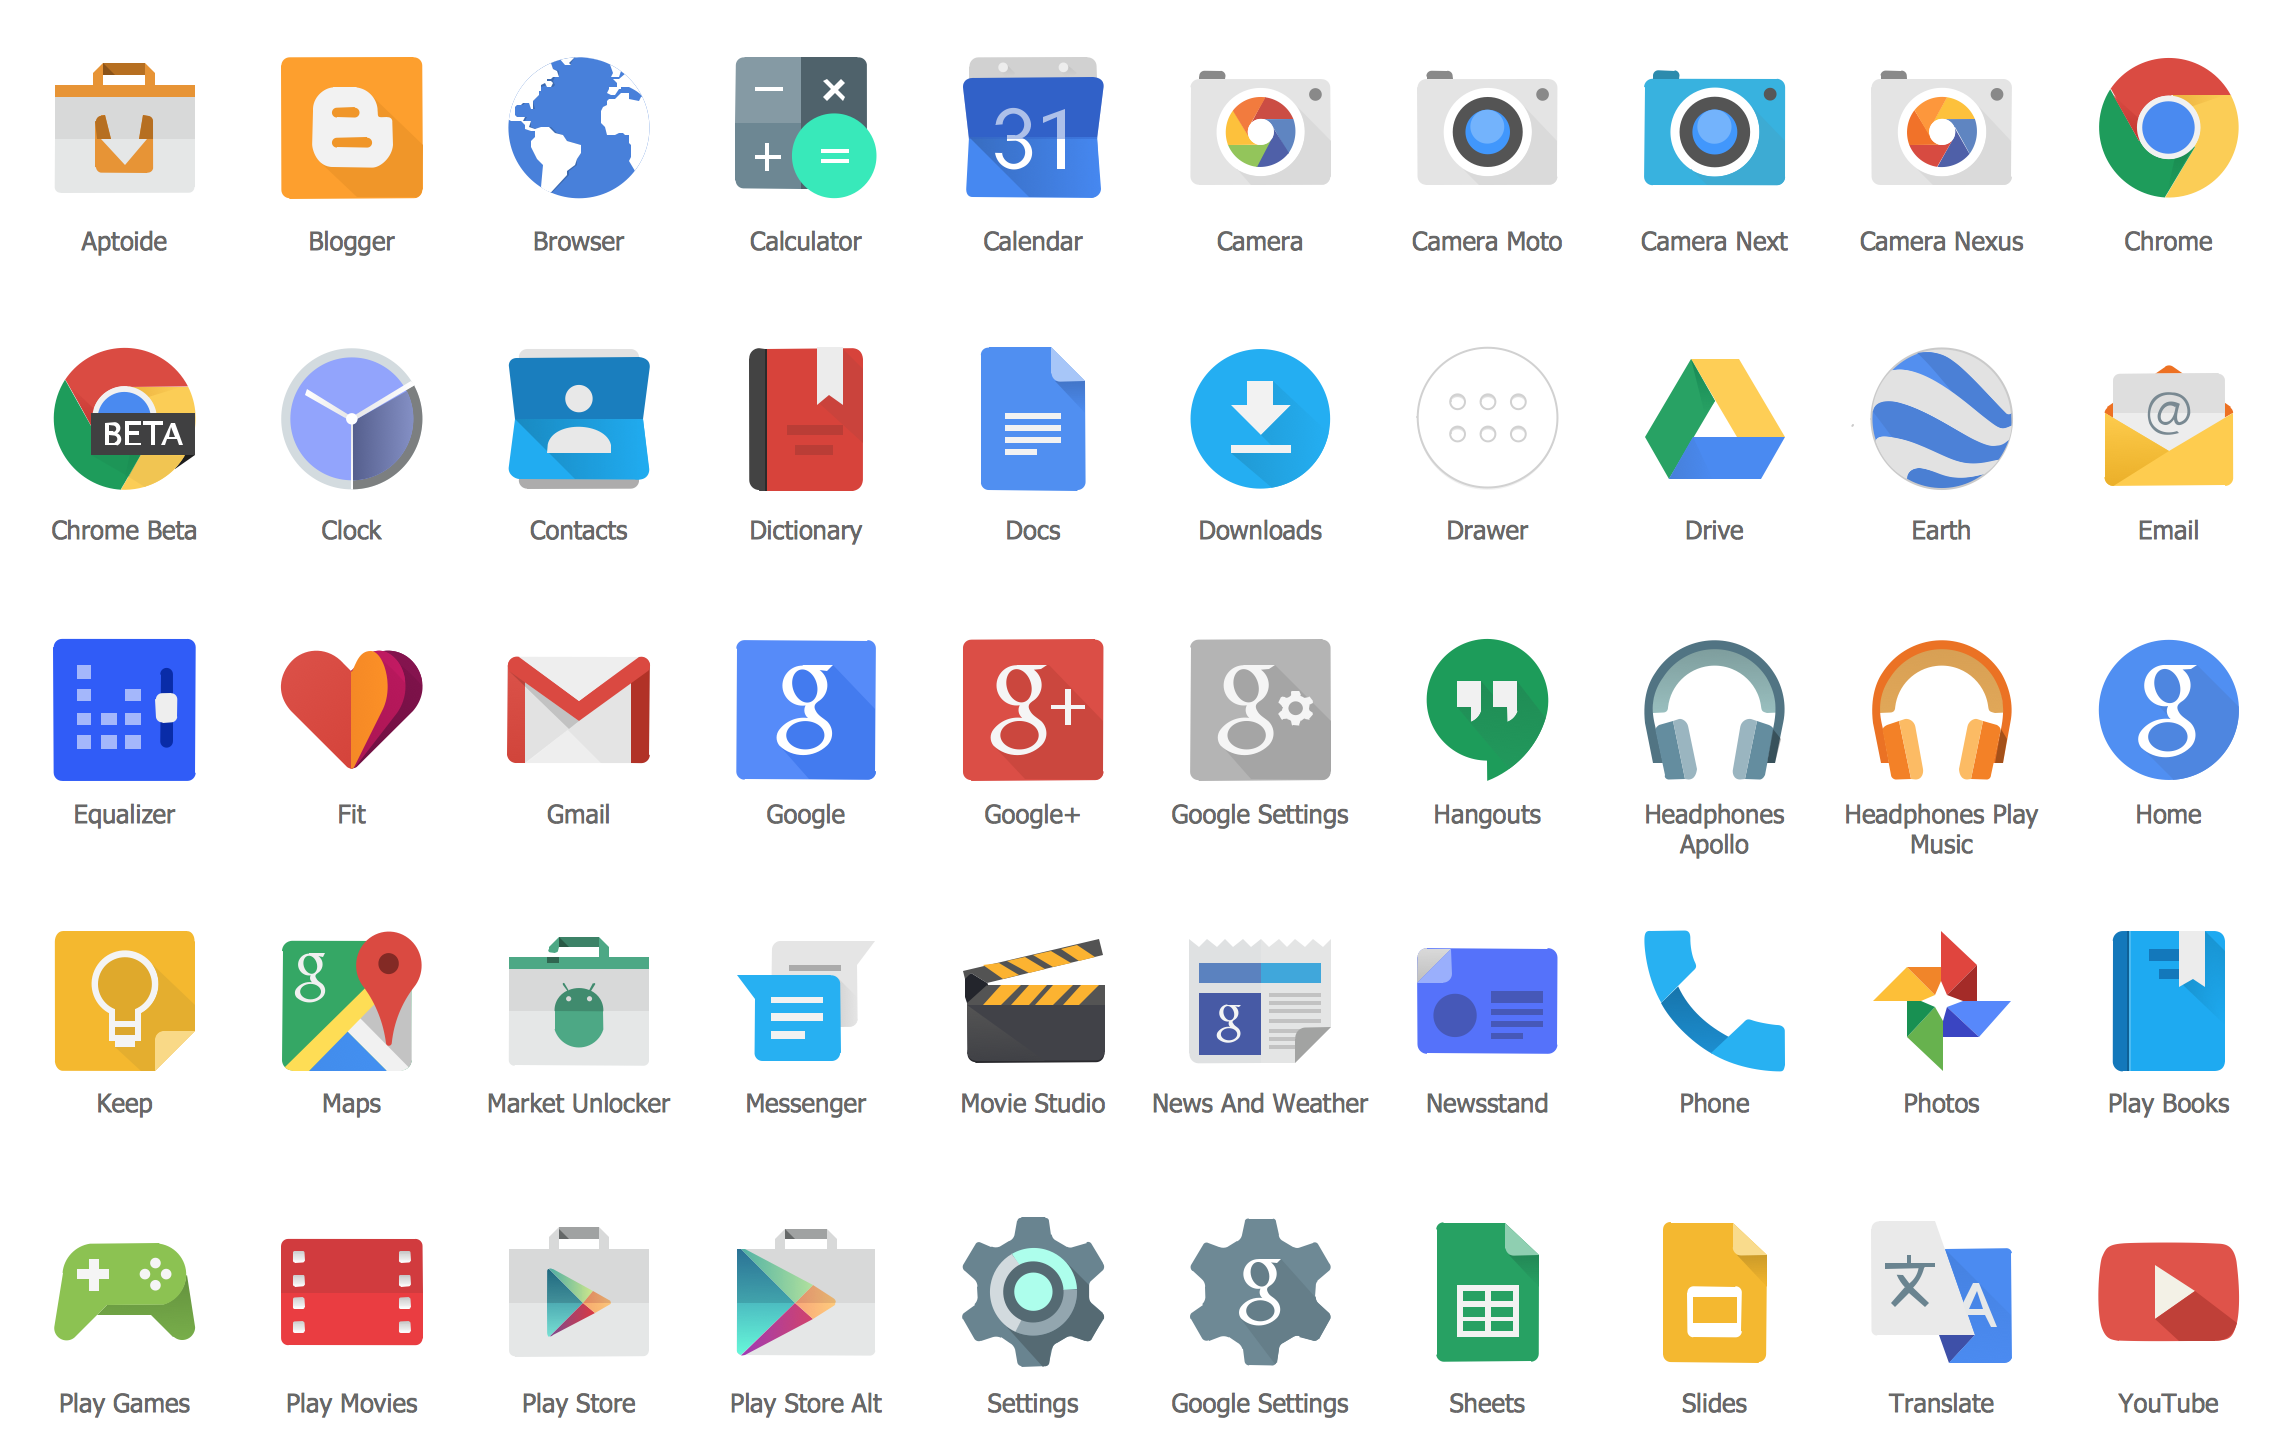 Design Elements Android Product Icons Android app icon